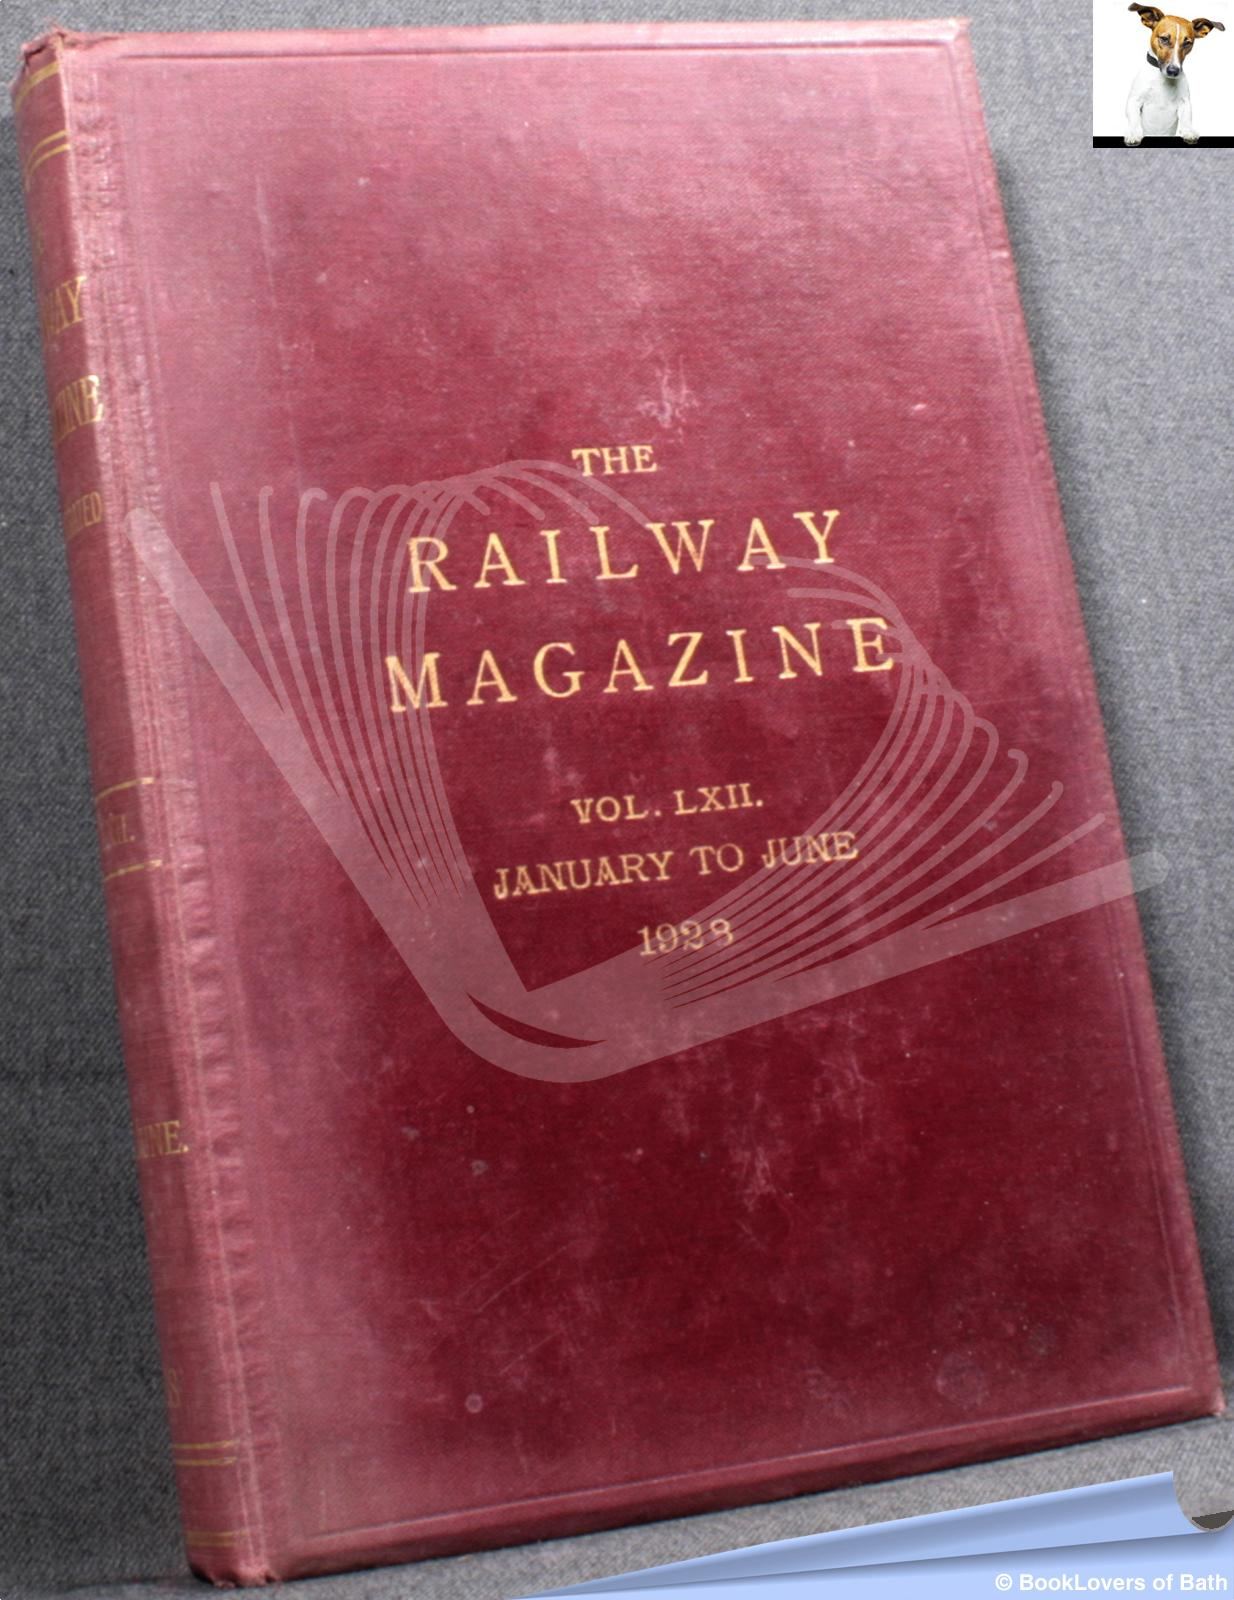 The Railway Magazine Vol. LXII January to June 1928 - Anon.